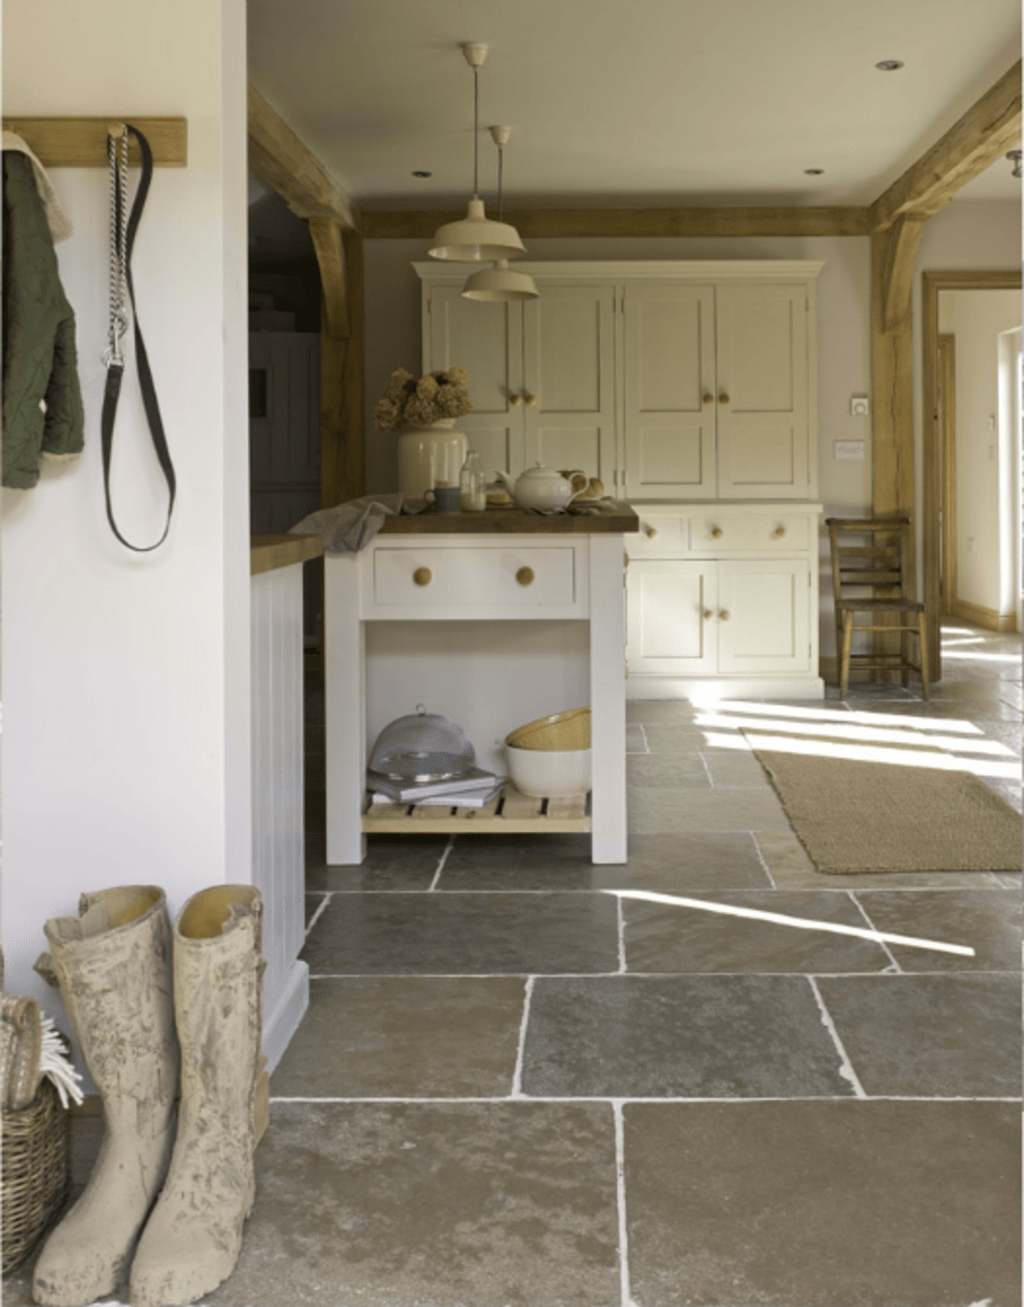 Natural Stone Floor Ideas That Looks Amazing In Traditional And Vintage Kitchen Styles Part 2 Neuedekorat Natural Stone Flooring Floor Design Kitchen Flooring